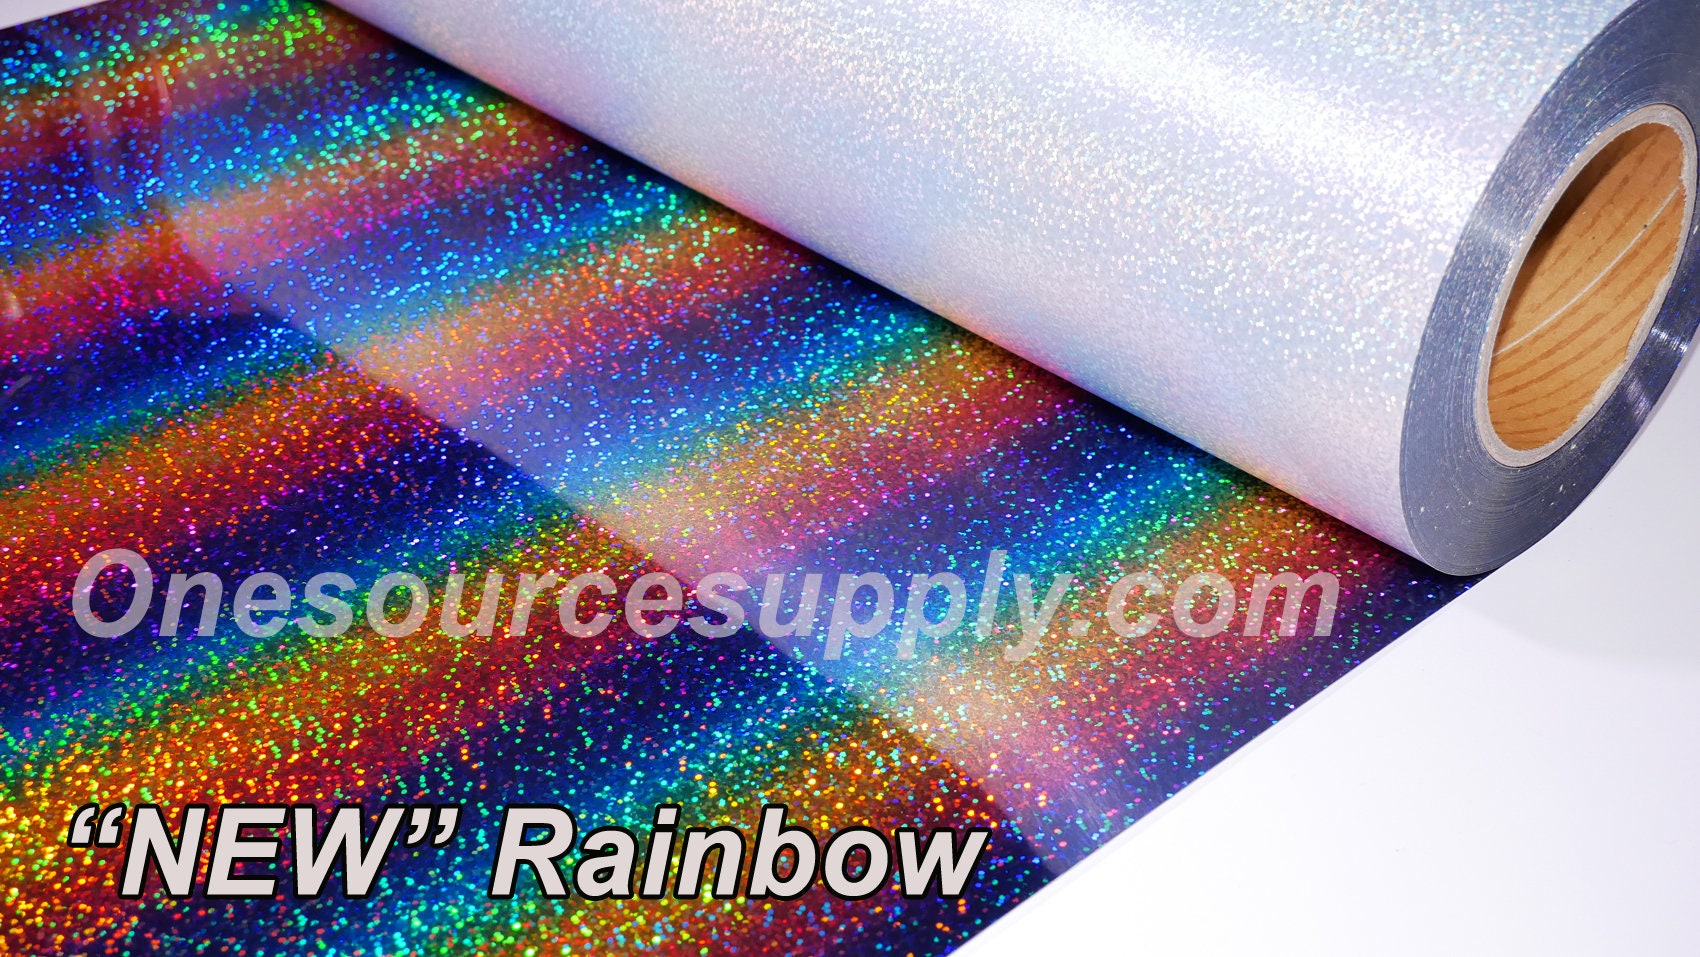 12 X 20 1 Sheet Siser Easyweed Holographic Etsy